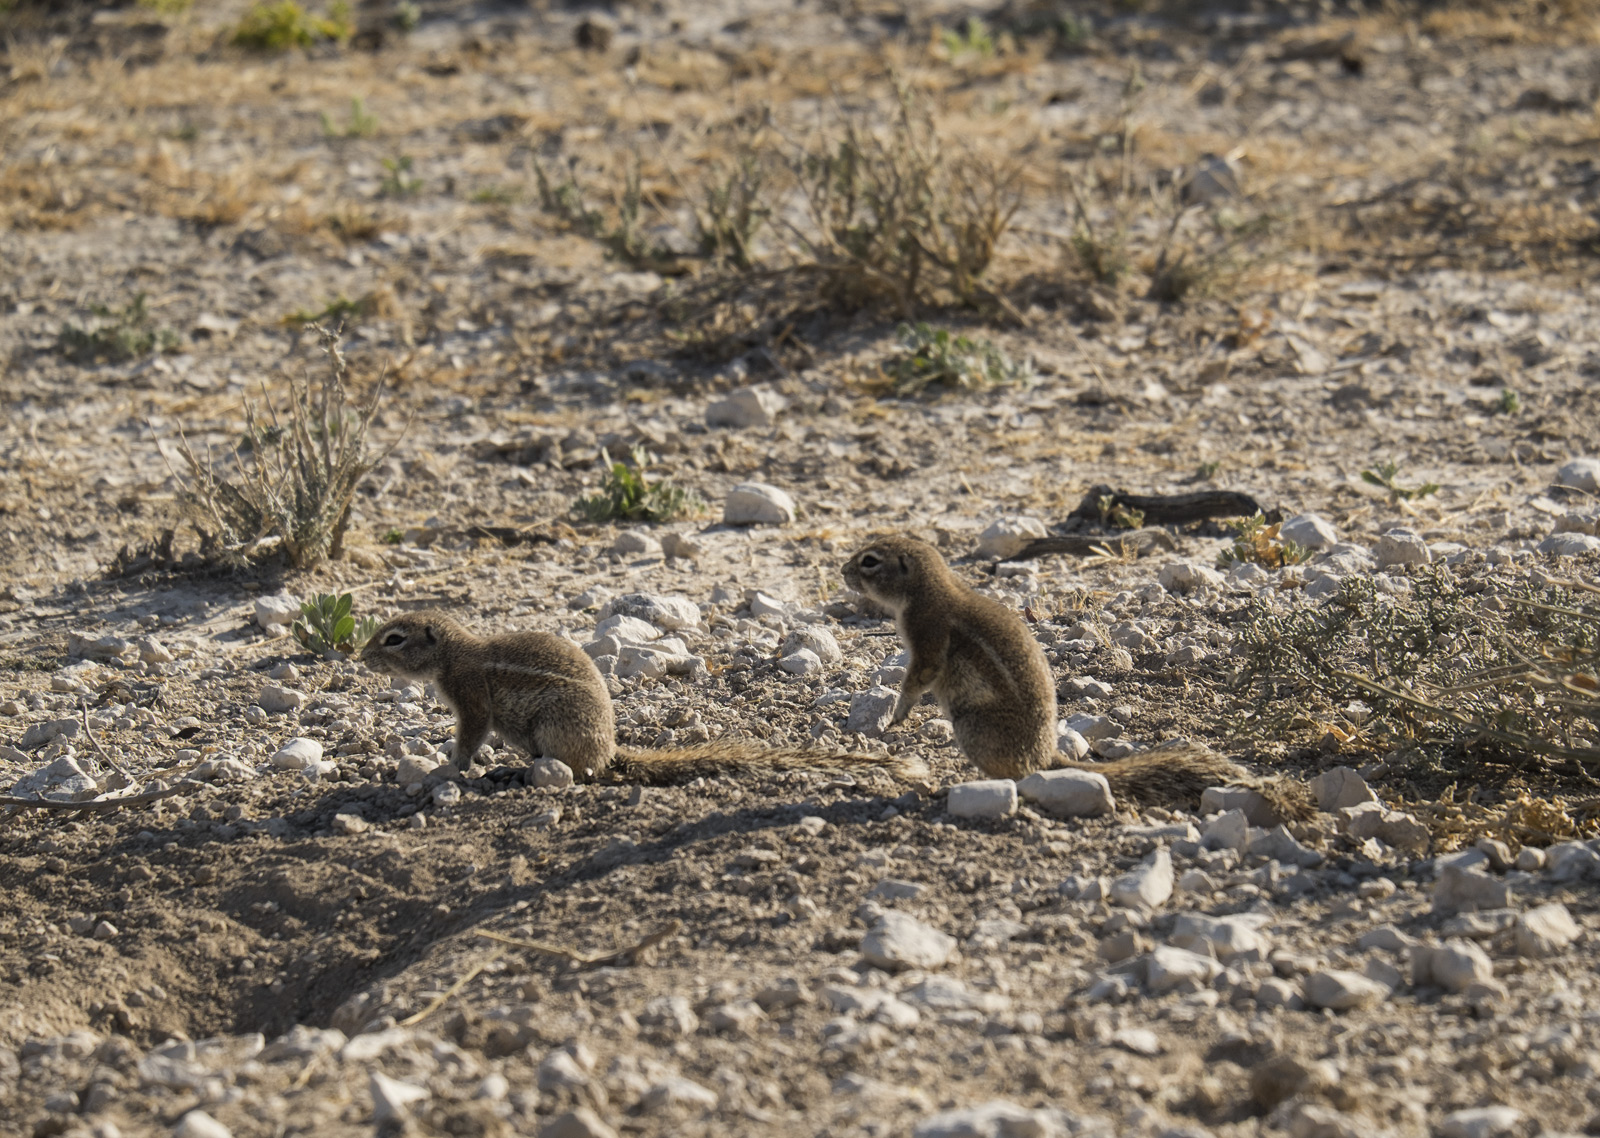 These ground squirrels were playing a furious game of tag outside their burrow beside the road.  Despite being prey for...